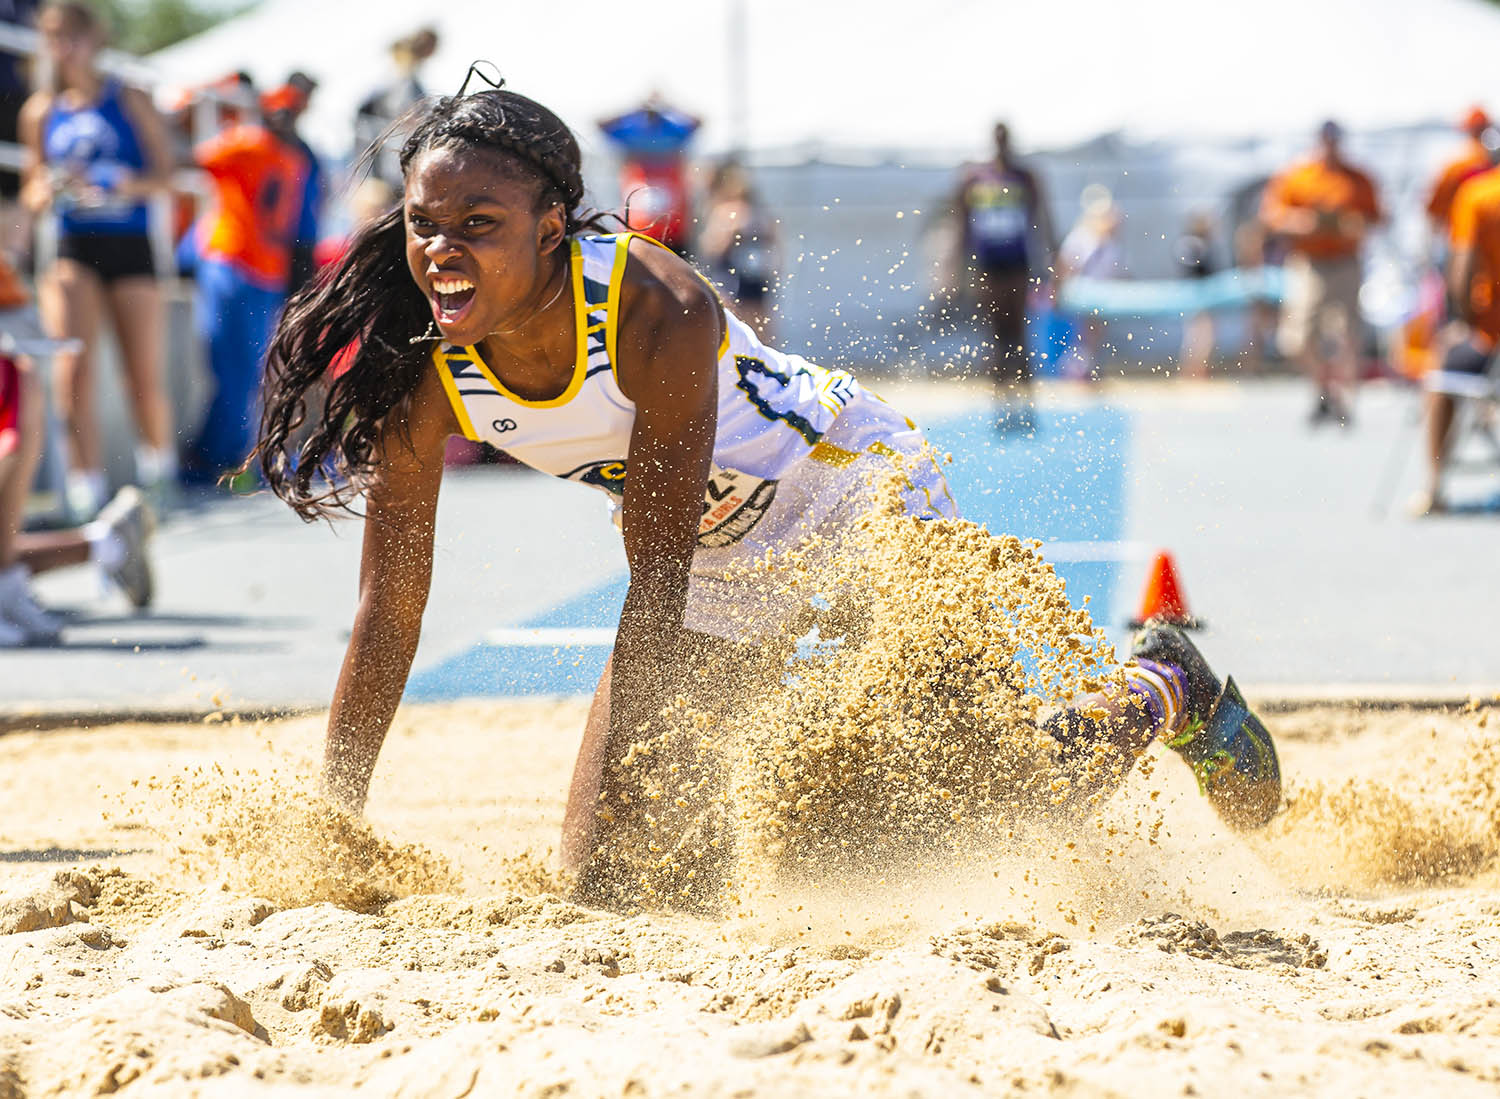 Southeast's Serena Bolden wins the Class 2A Long Jump with a jump of 19-00.75 during the IHSA Girls Track & Field State Finals at O'Brien Field on the campus of Eastern Illinois University, Saturday, May 18, 2019, in Charleston, Ill. [Justin L. Fowler/The State Journal-Register]